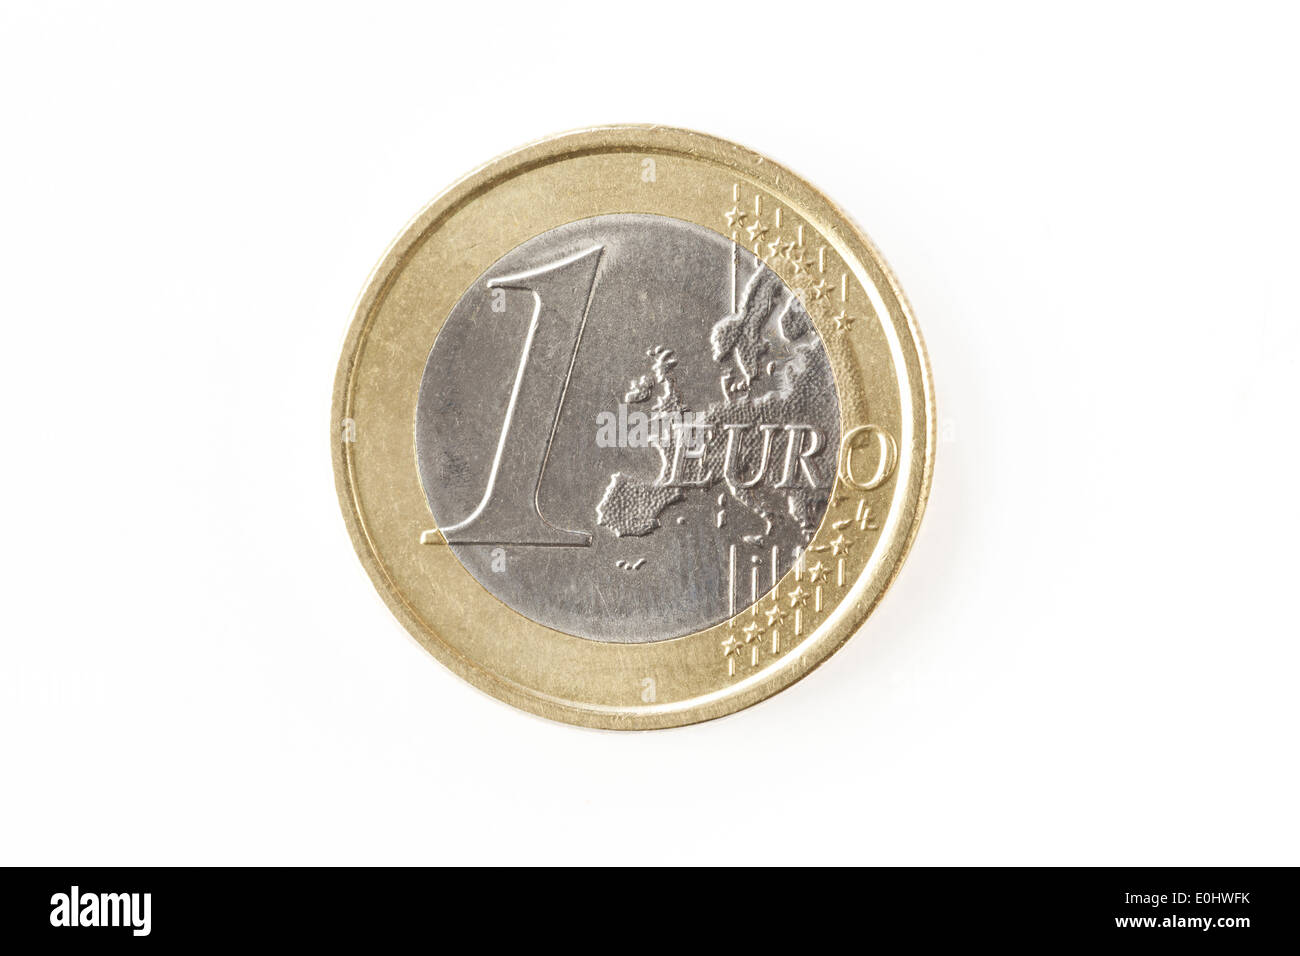 One euro coin isolated on a white background - Stock Image